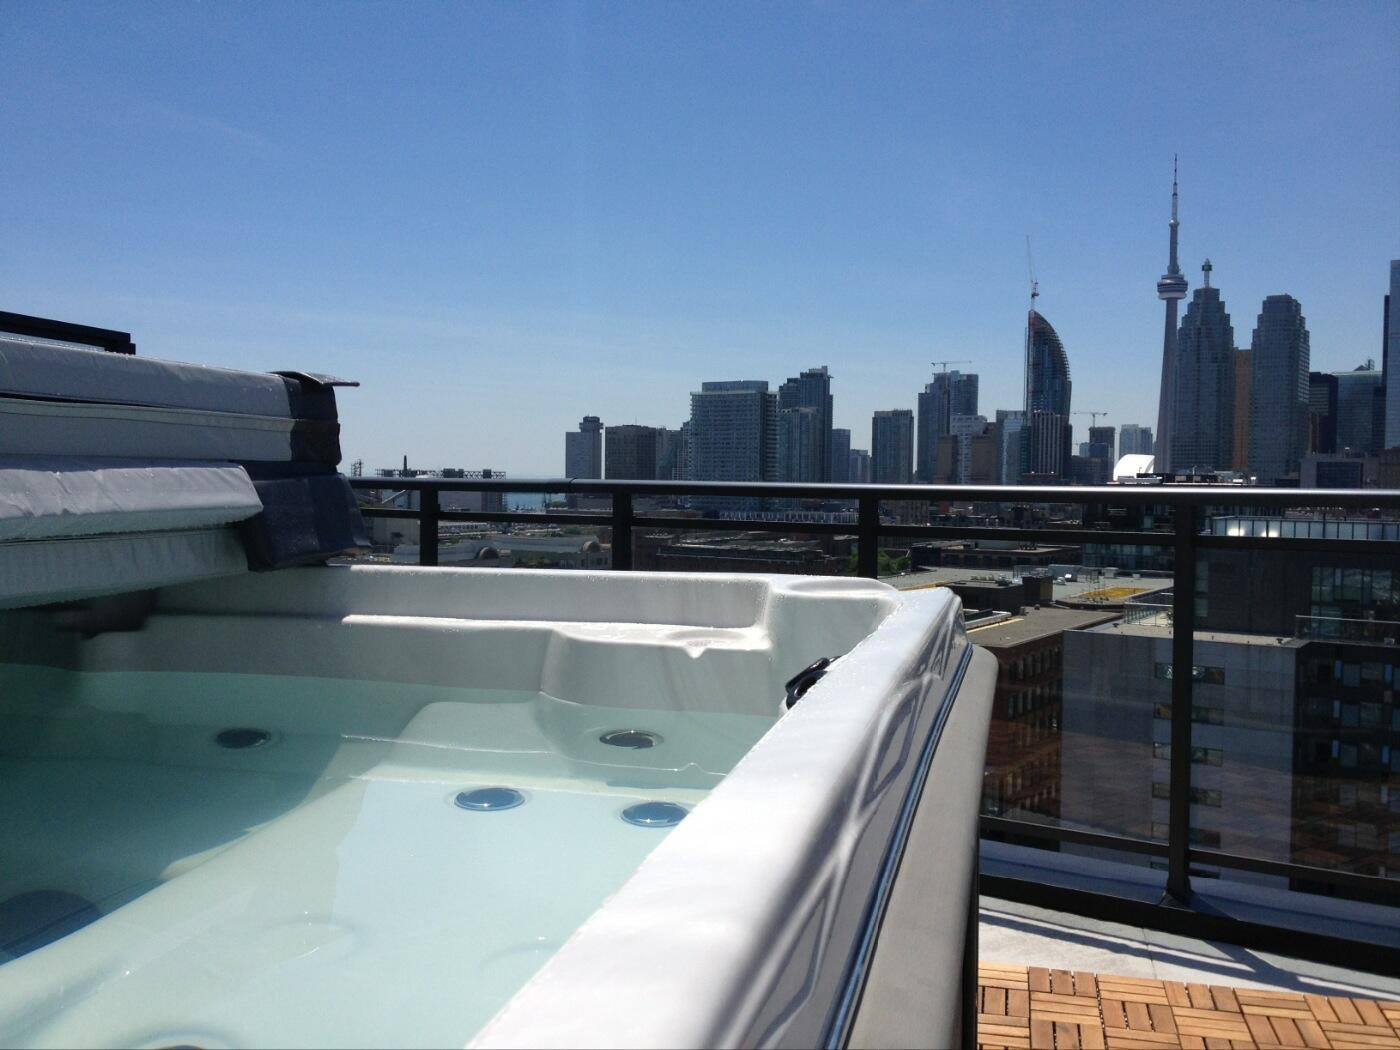 hot tub with a view of the city!